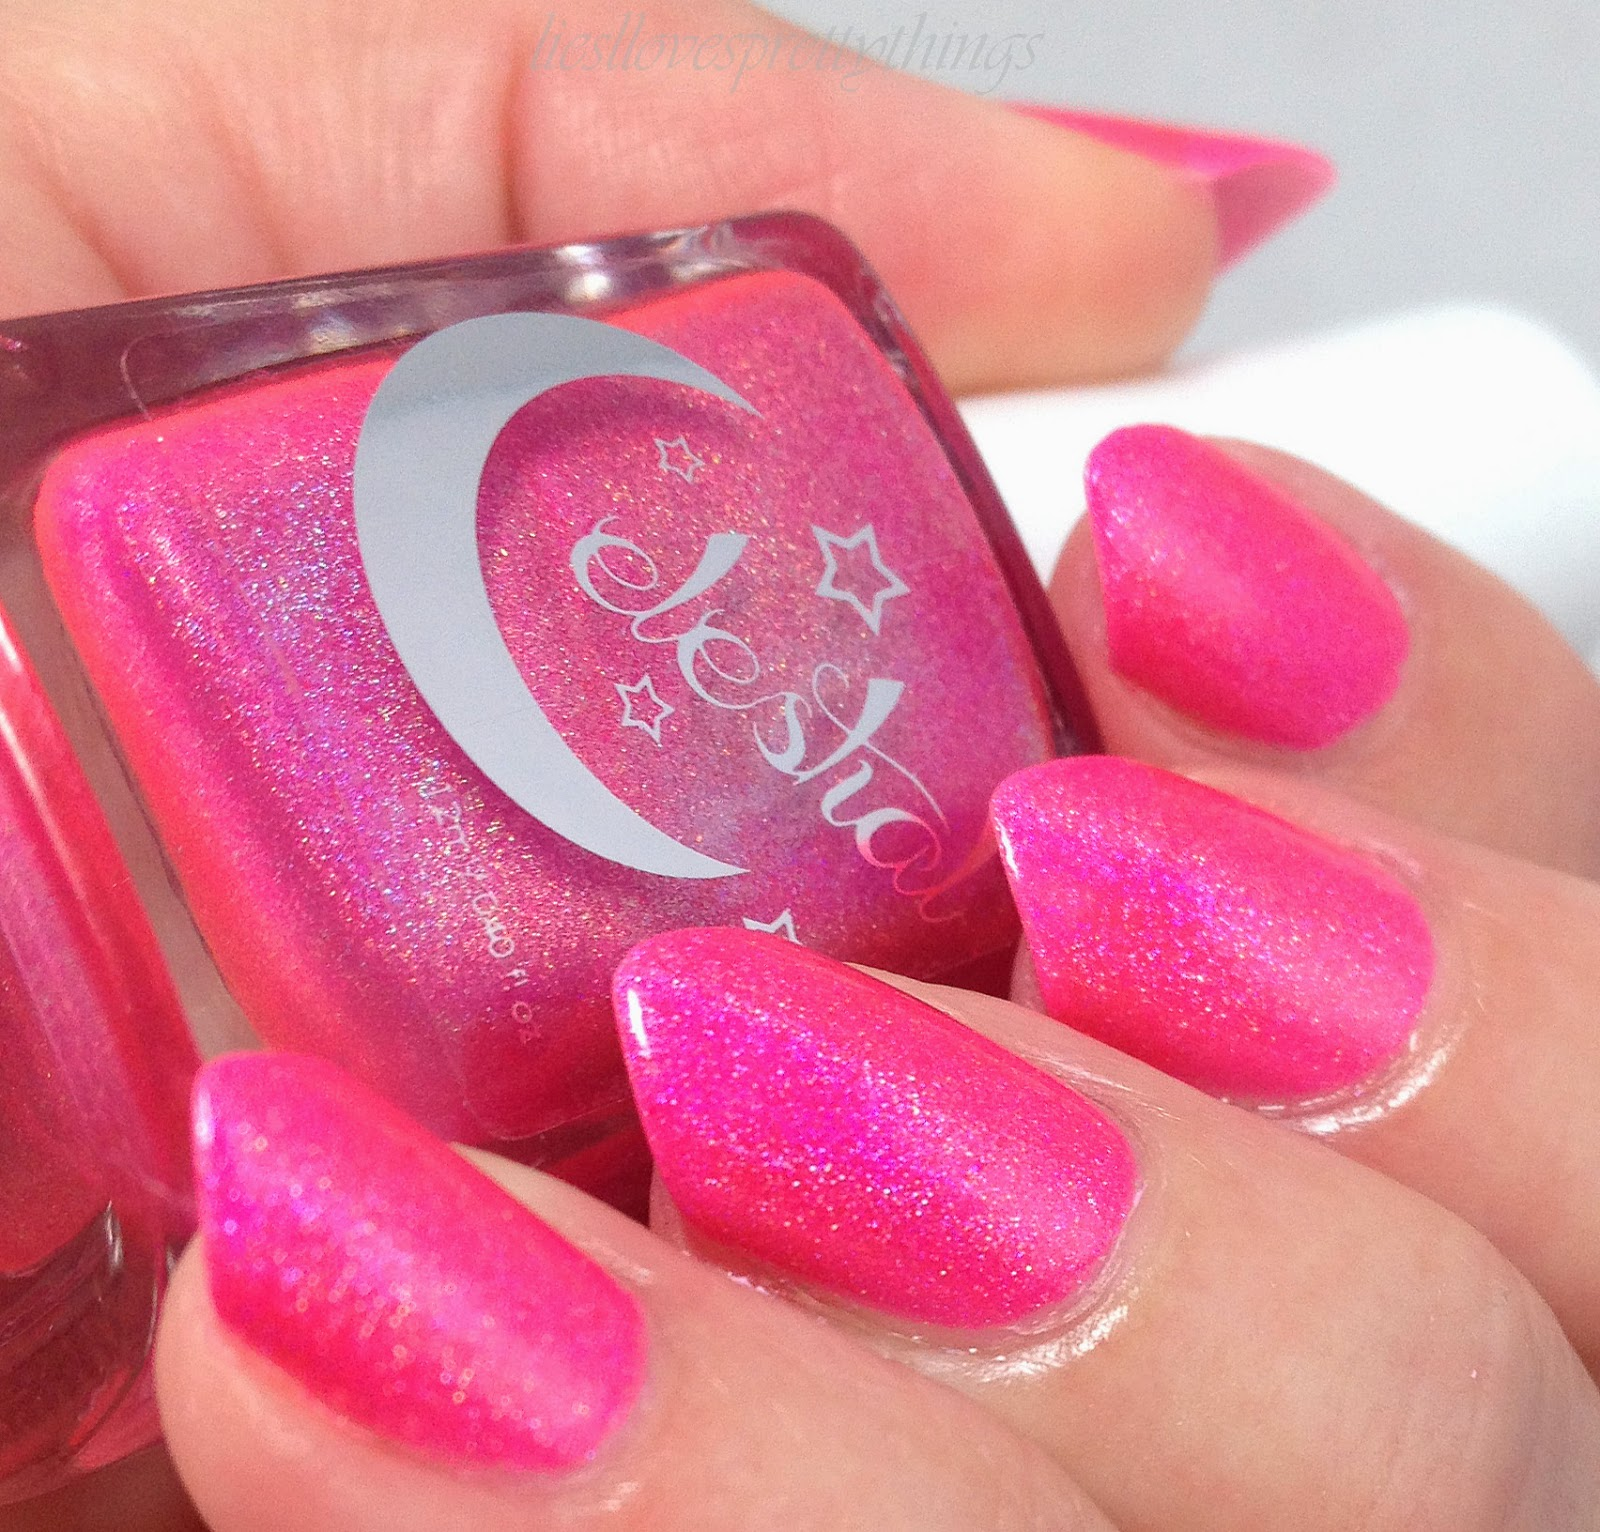 Celestial Cosmetics Merge-- The Electric You Collection, Summer 2014